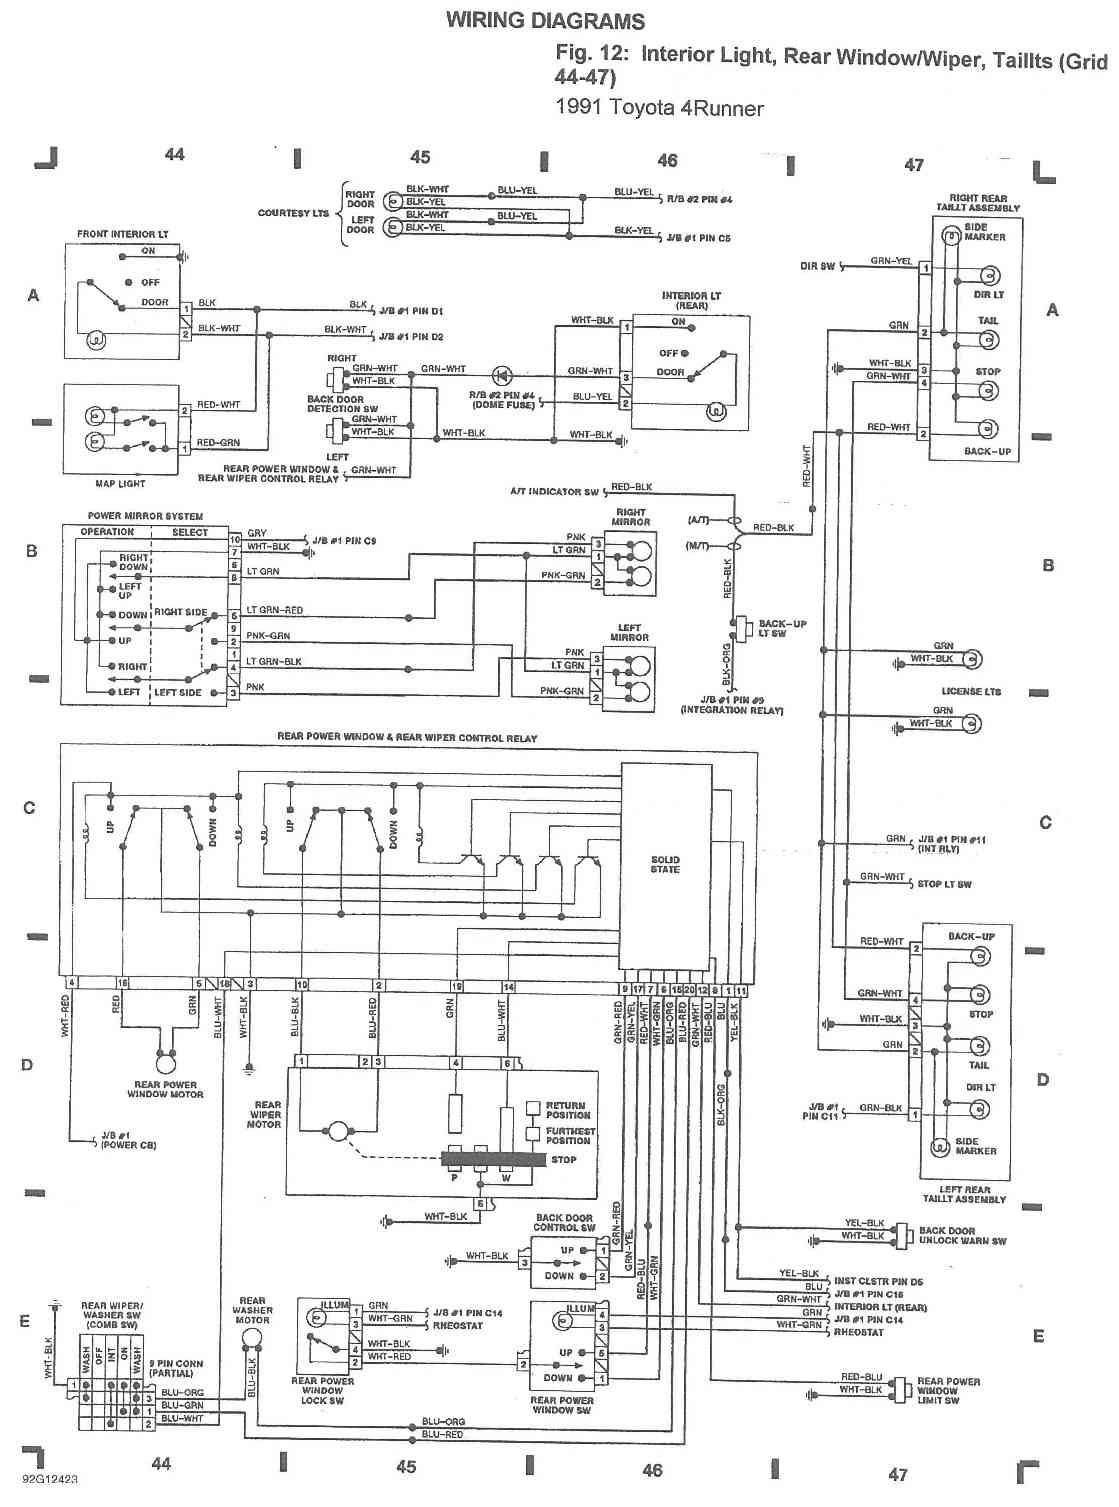 hight resolution of toyota 4runner wiring diagram everything wiring diagram 1998 toyota 4runner ignition wiring diagram 98 toyota 4runner wiring diagram